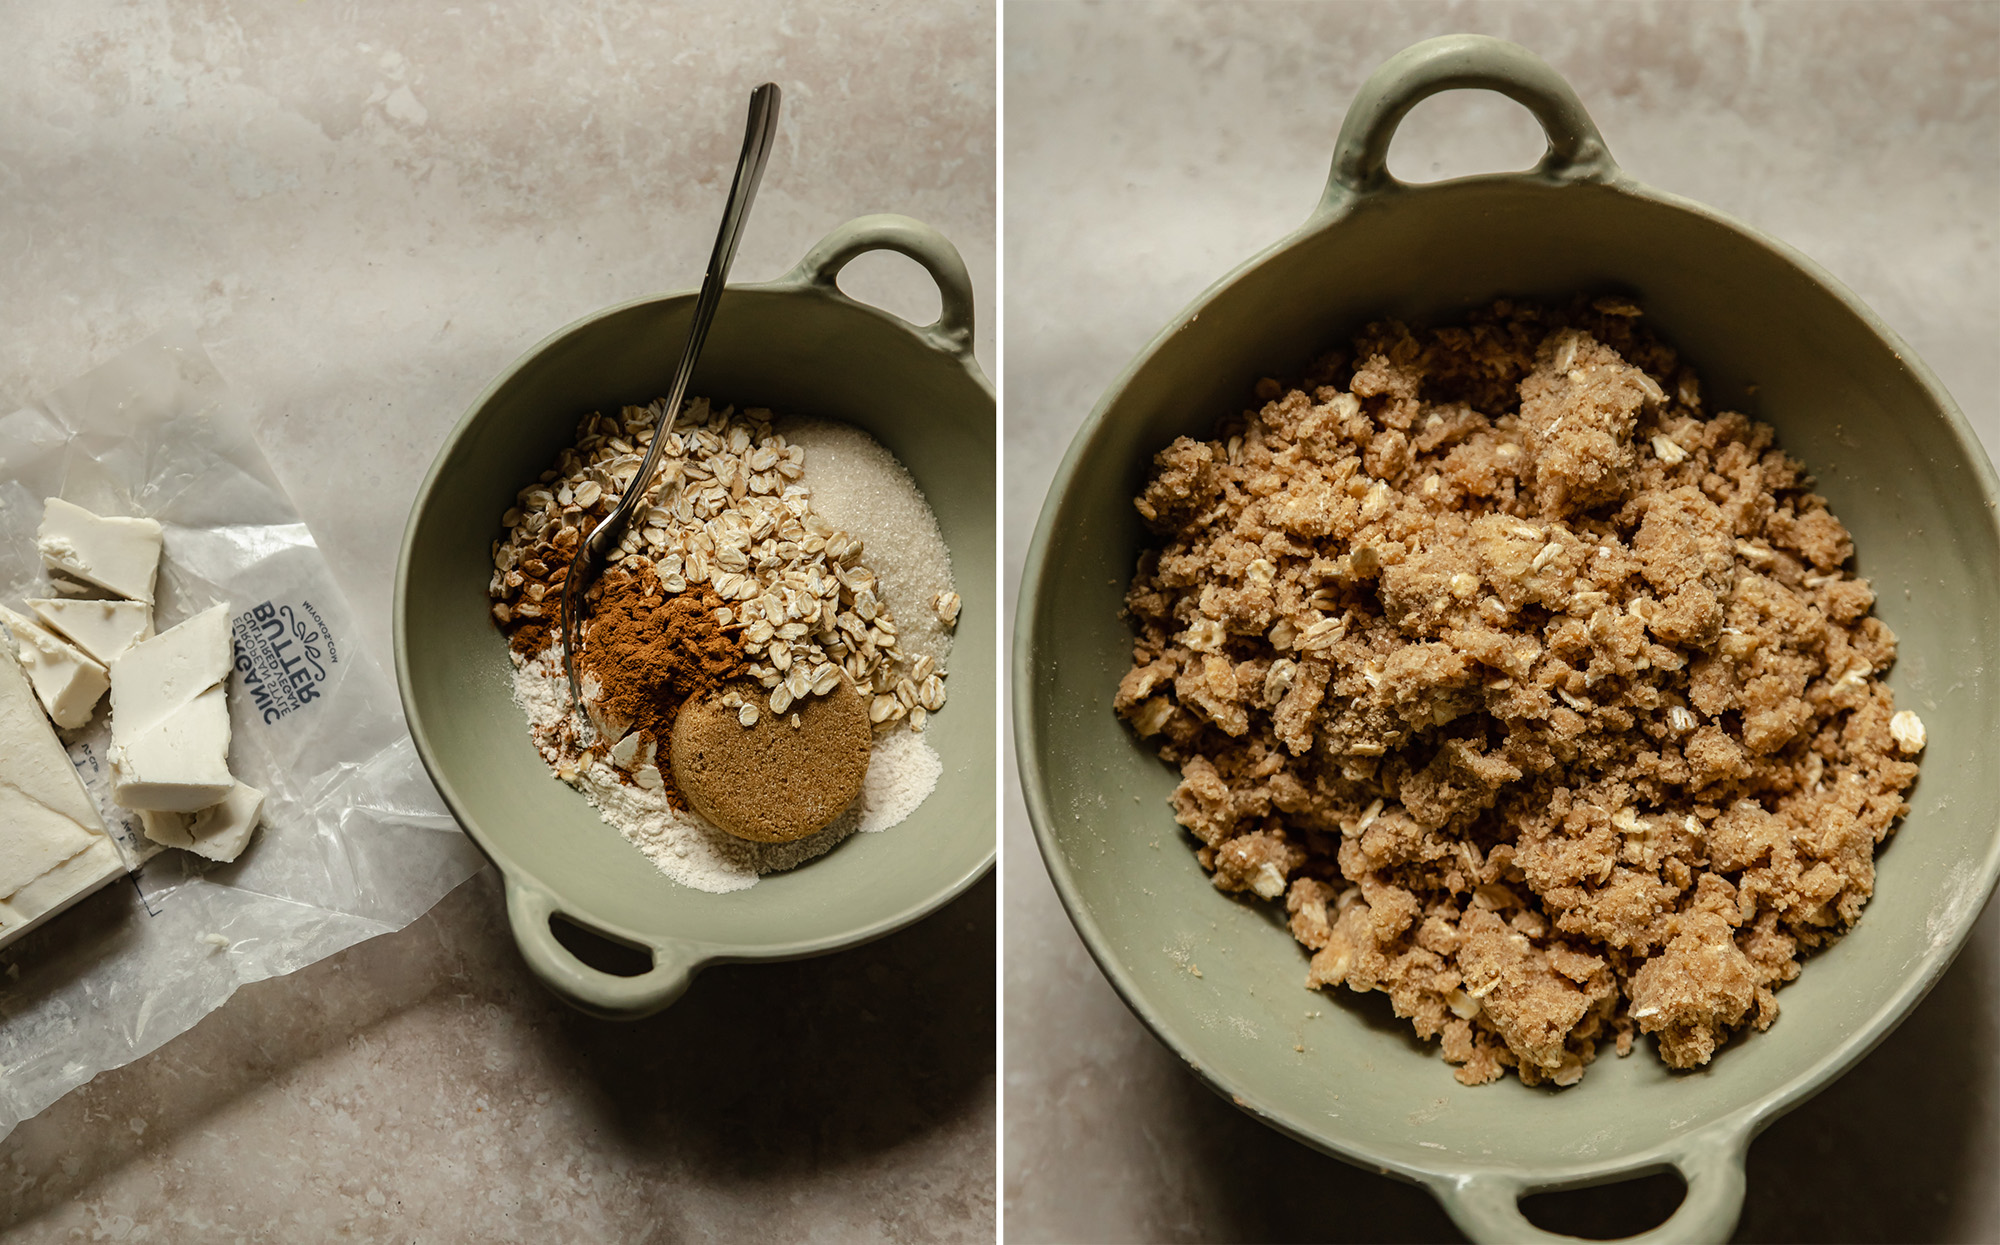 Two images show crumble topping as a mixture before being combined and after in a light green bowl.